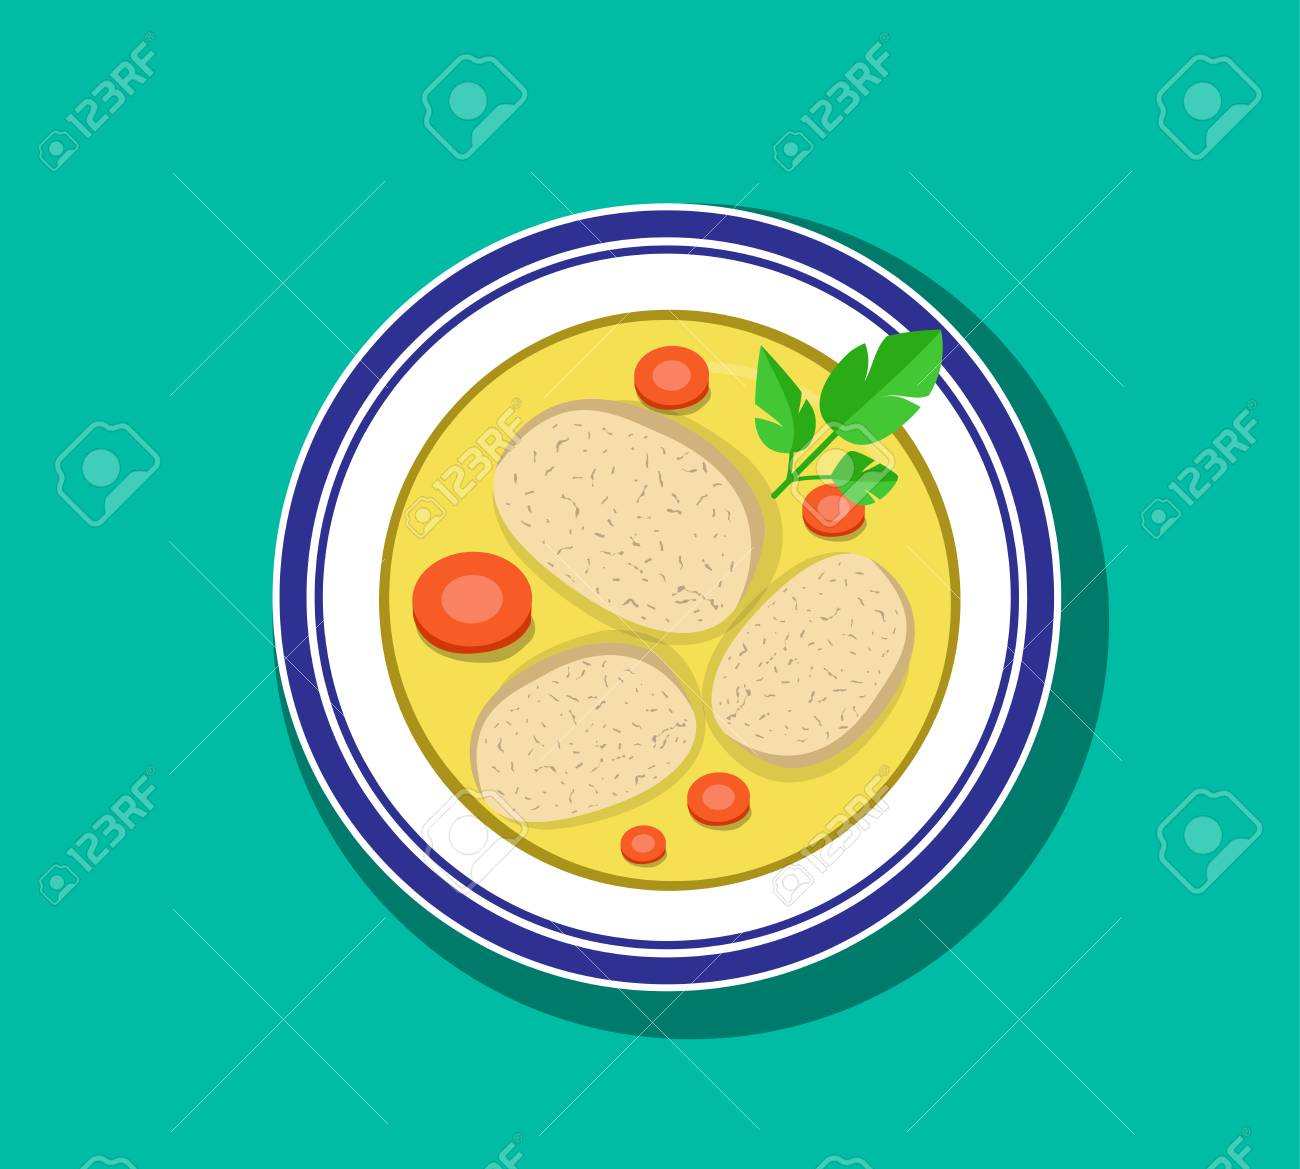 top view sliced gefilte fish soup in bowl vector design royalty free cliparts vectors and stock illustration image 95340514 top view sliced gefilte fish soup in bowl vector design